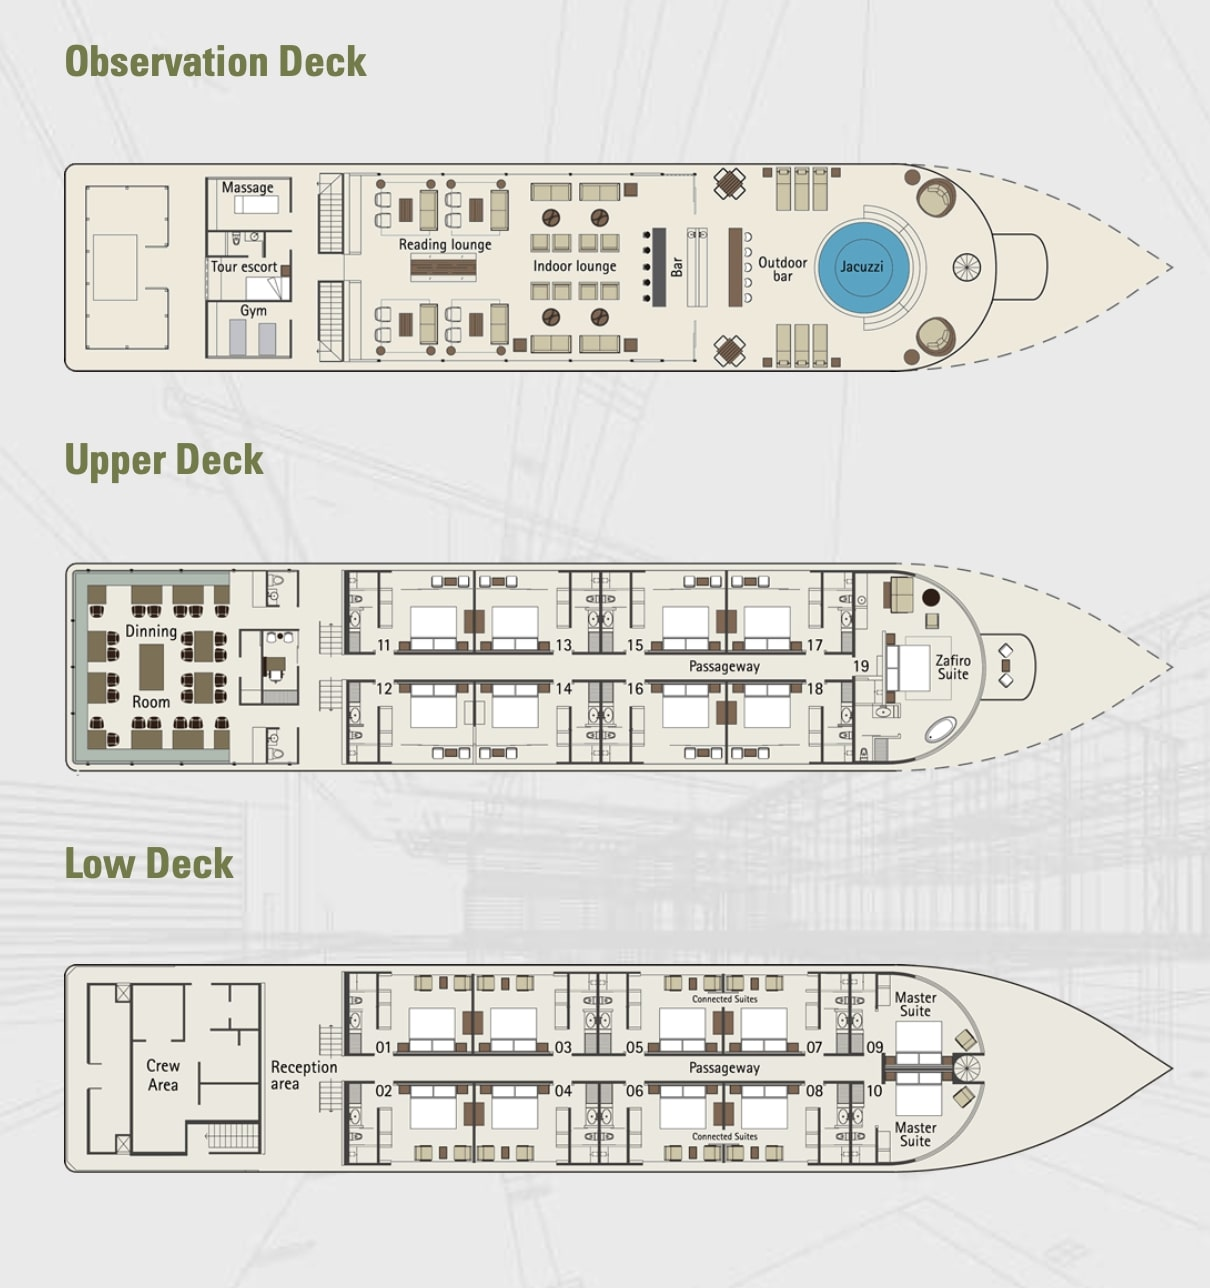 zafiro cruise deck plan